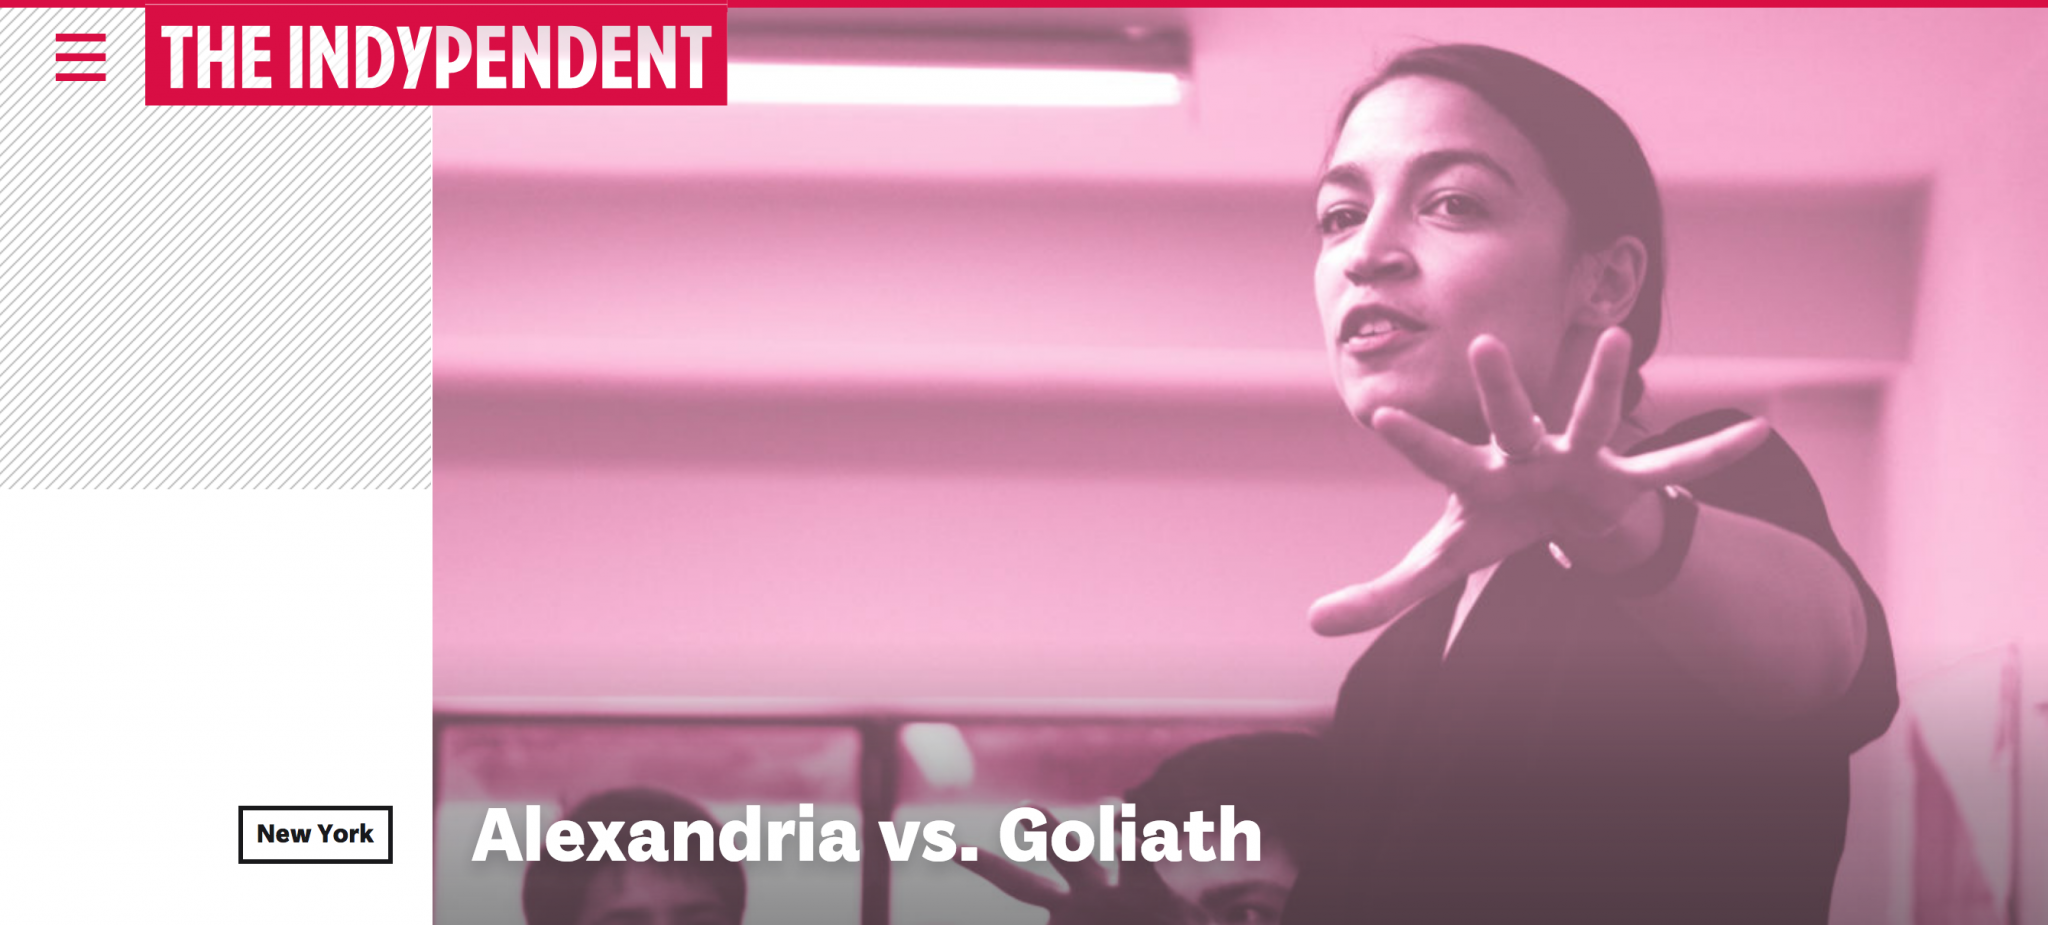 Indypendent : Alexandria Ocasio-Cortez vs. the Goliath Joseph Crowley Queens party boss